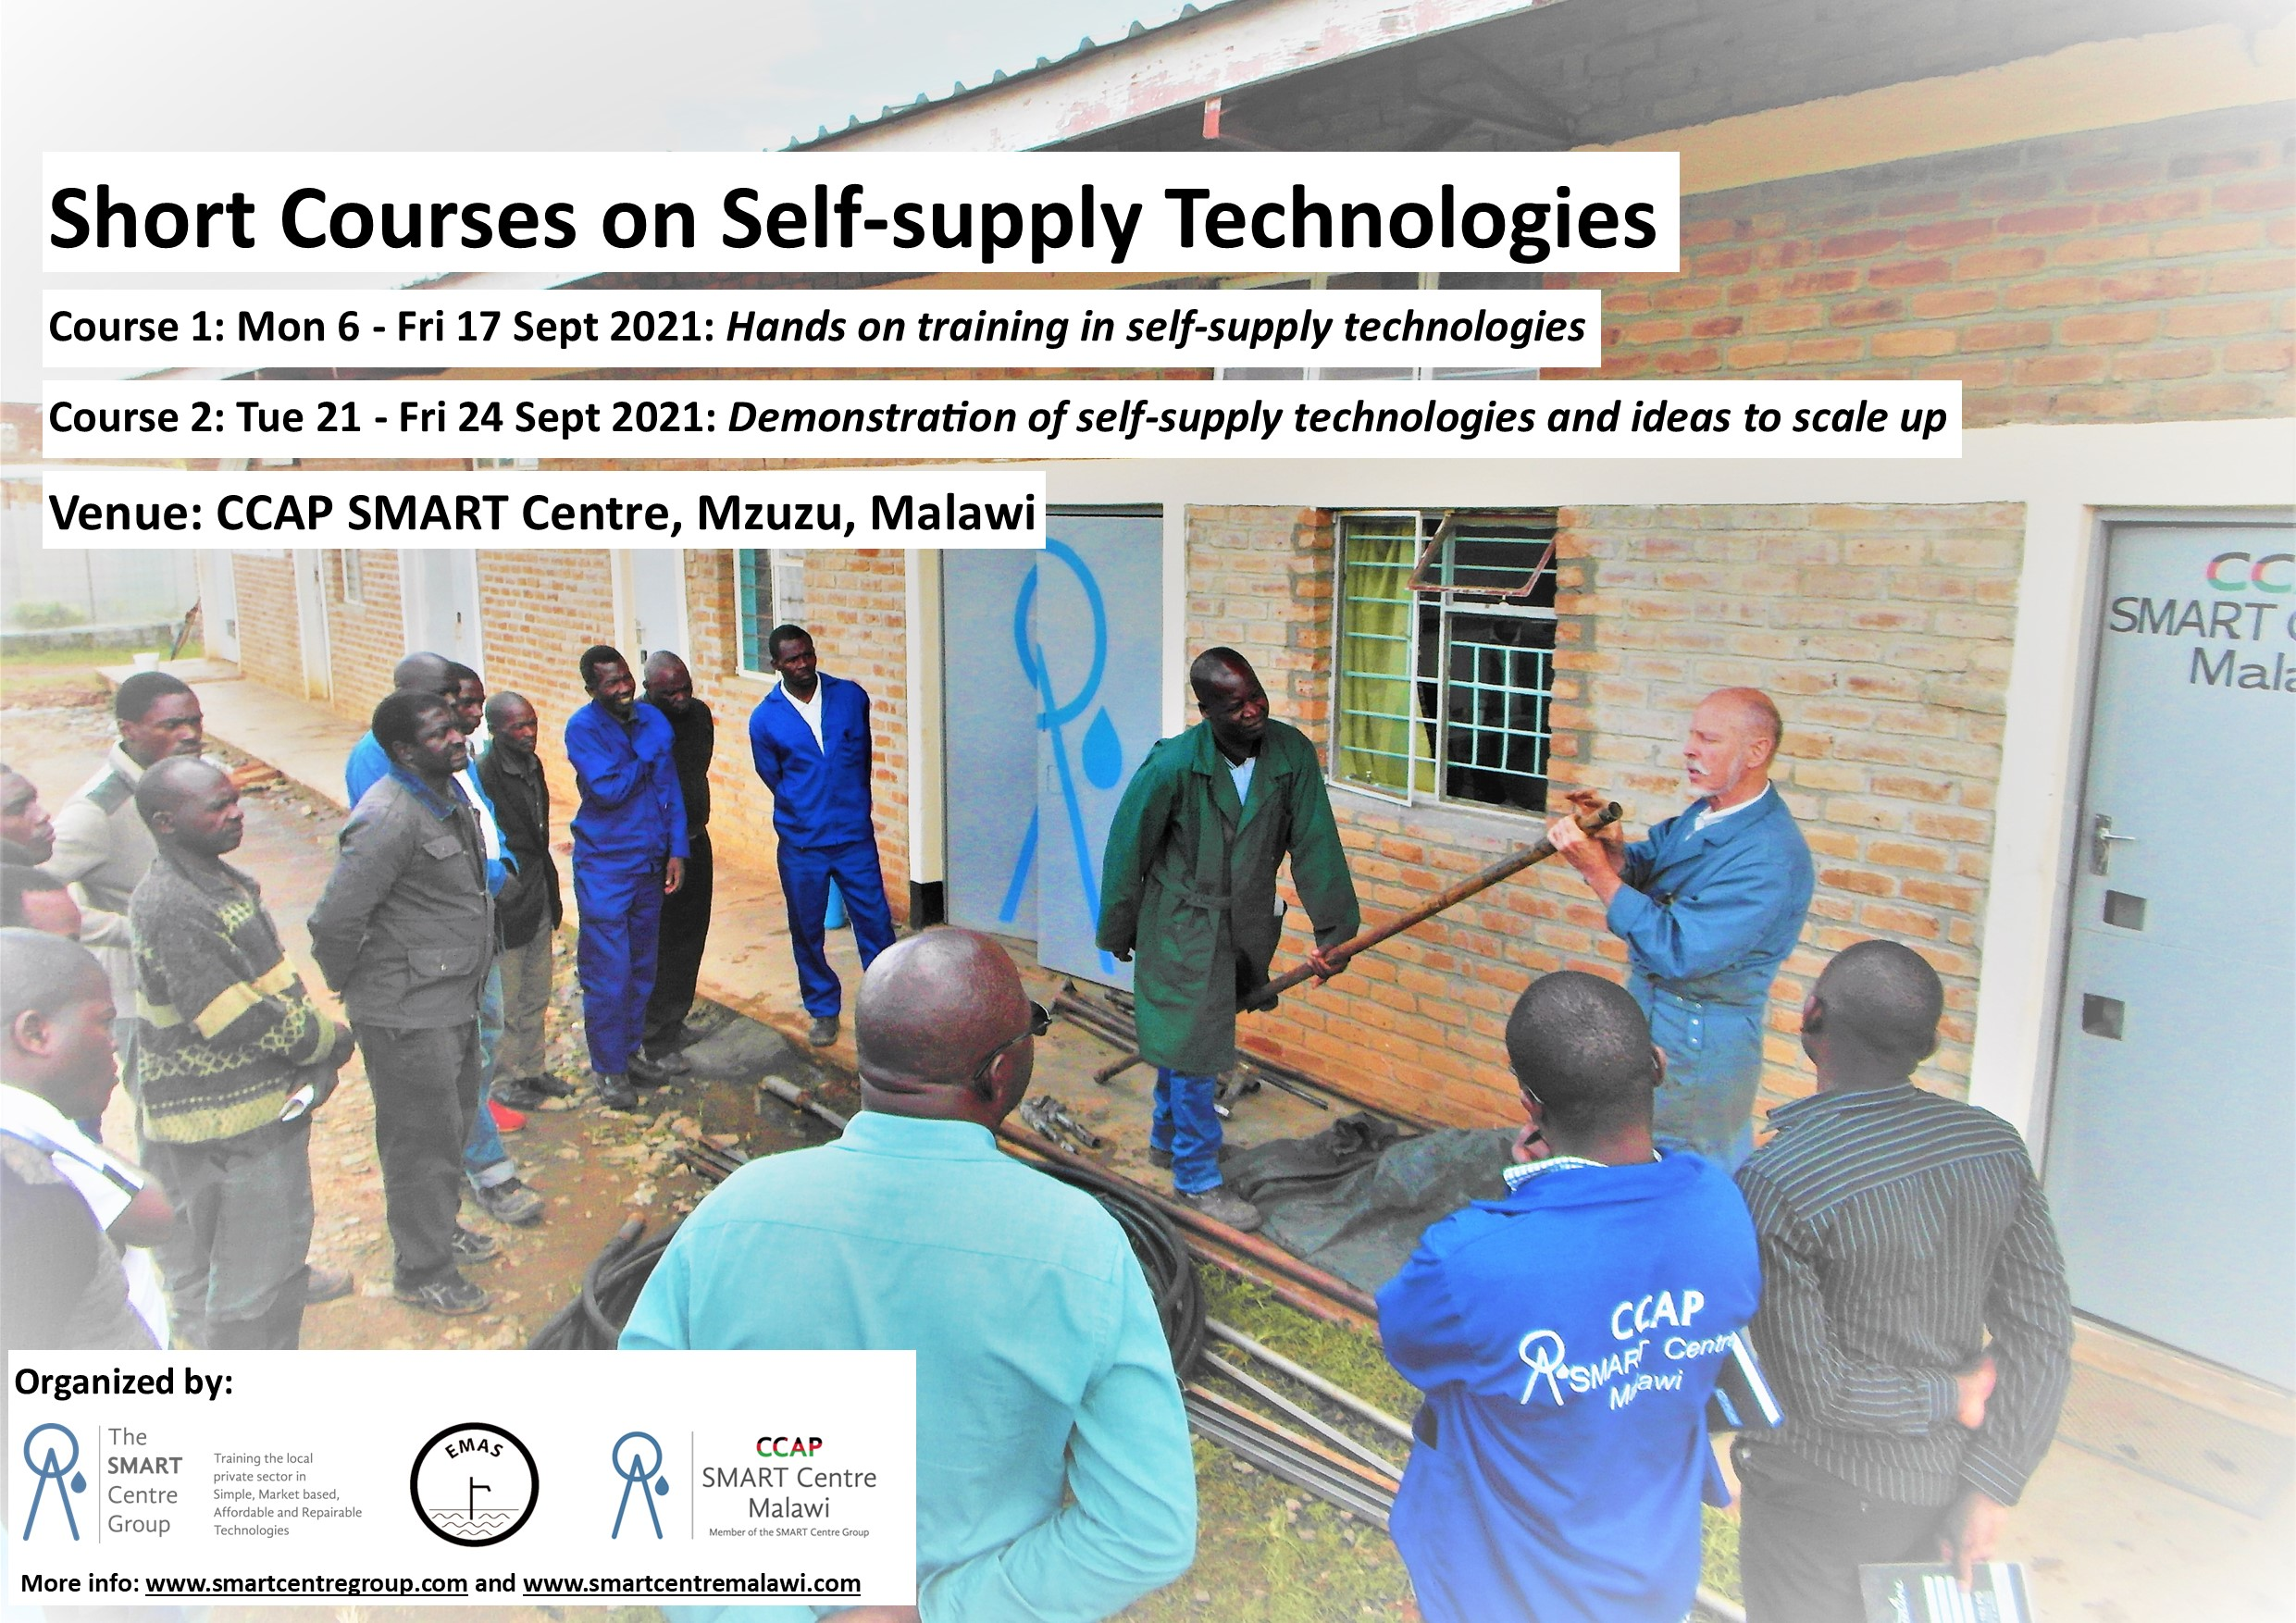 Short courses on Self-supply Technologies @ CCAP SMART Centre, Malawi